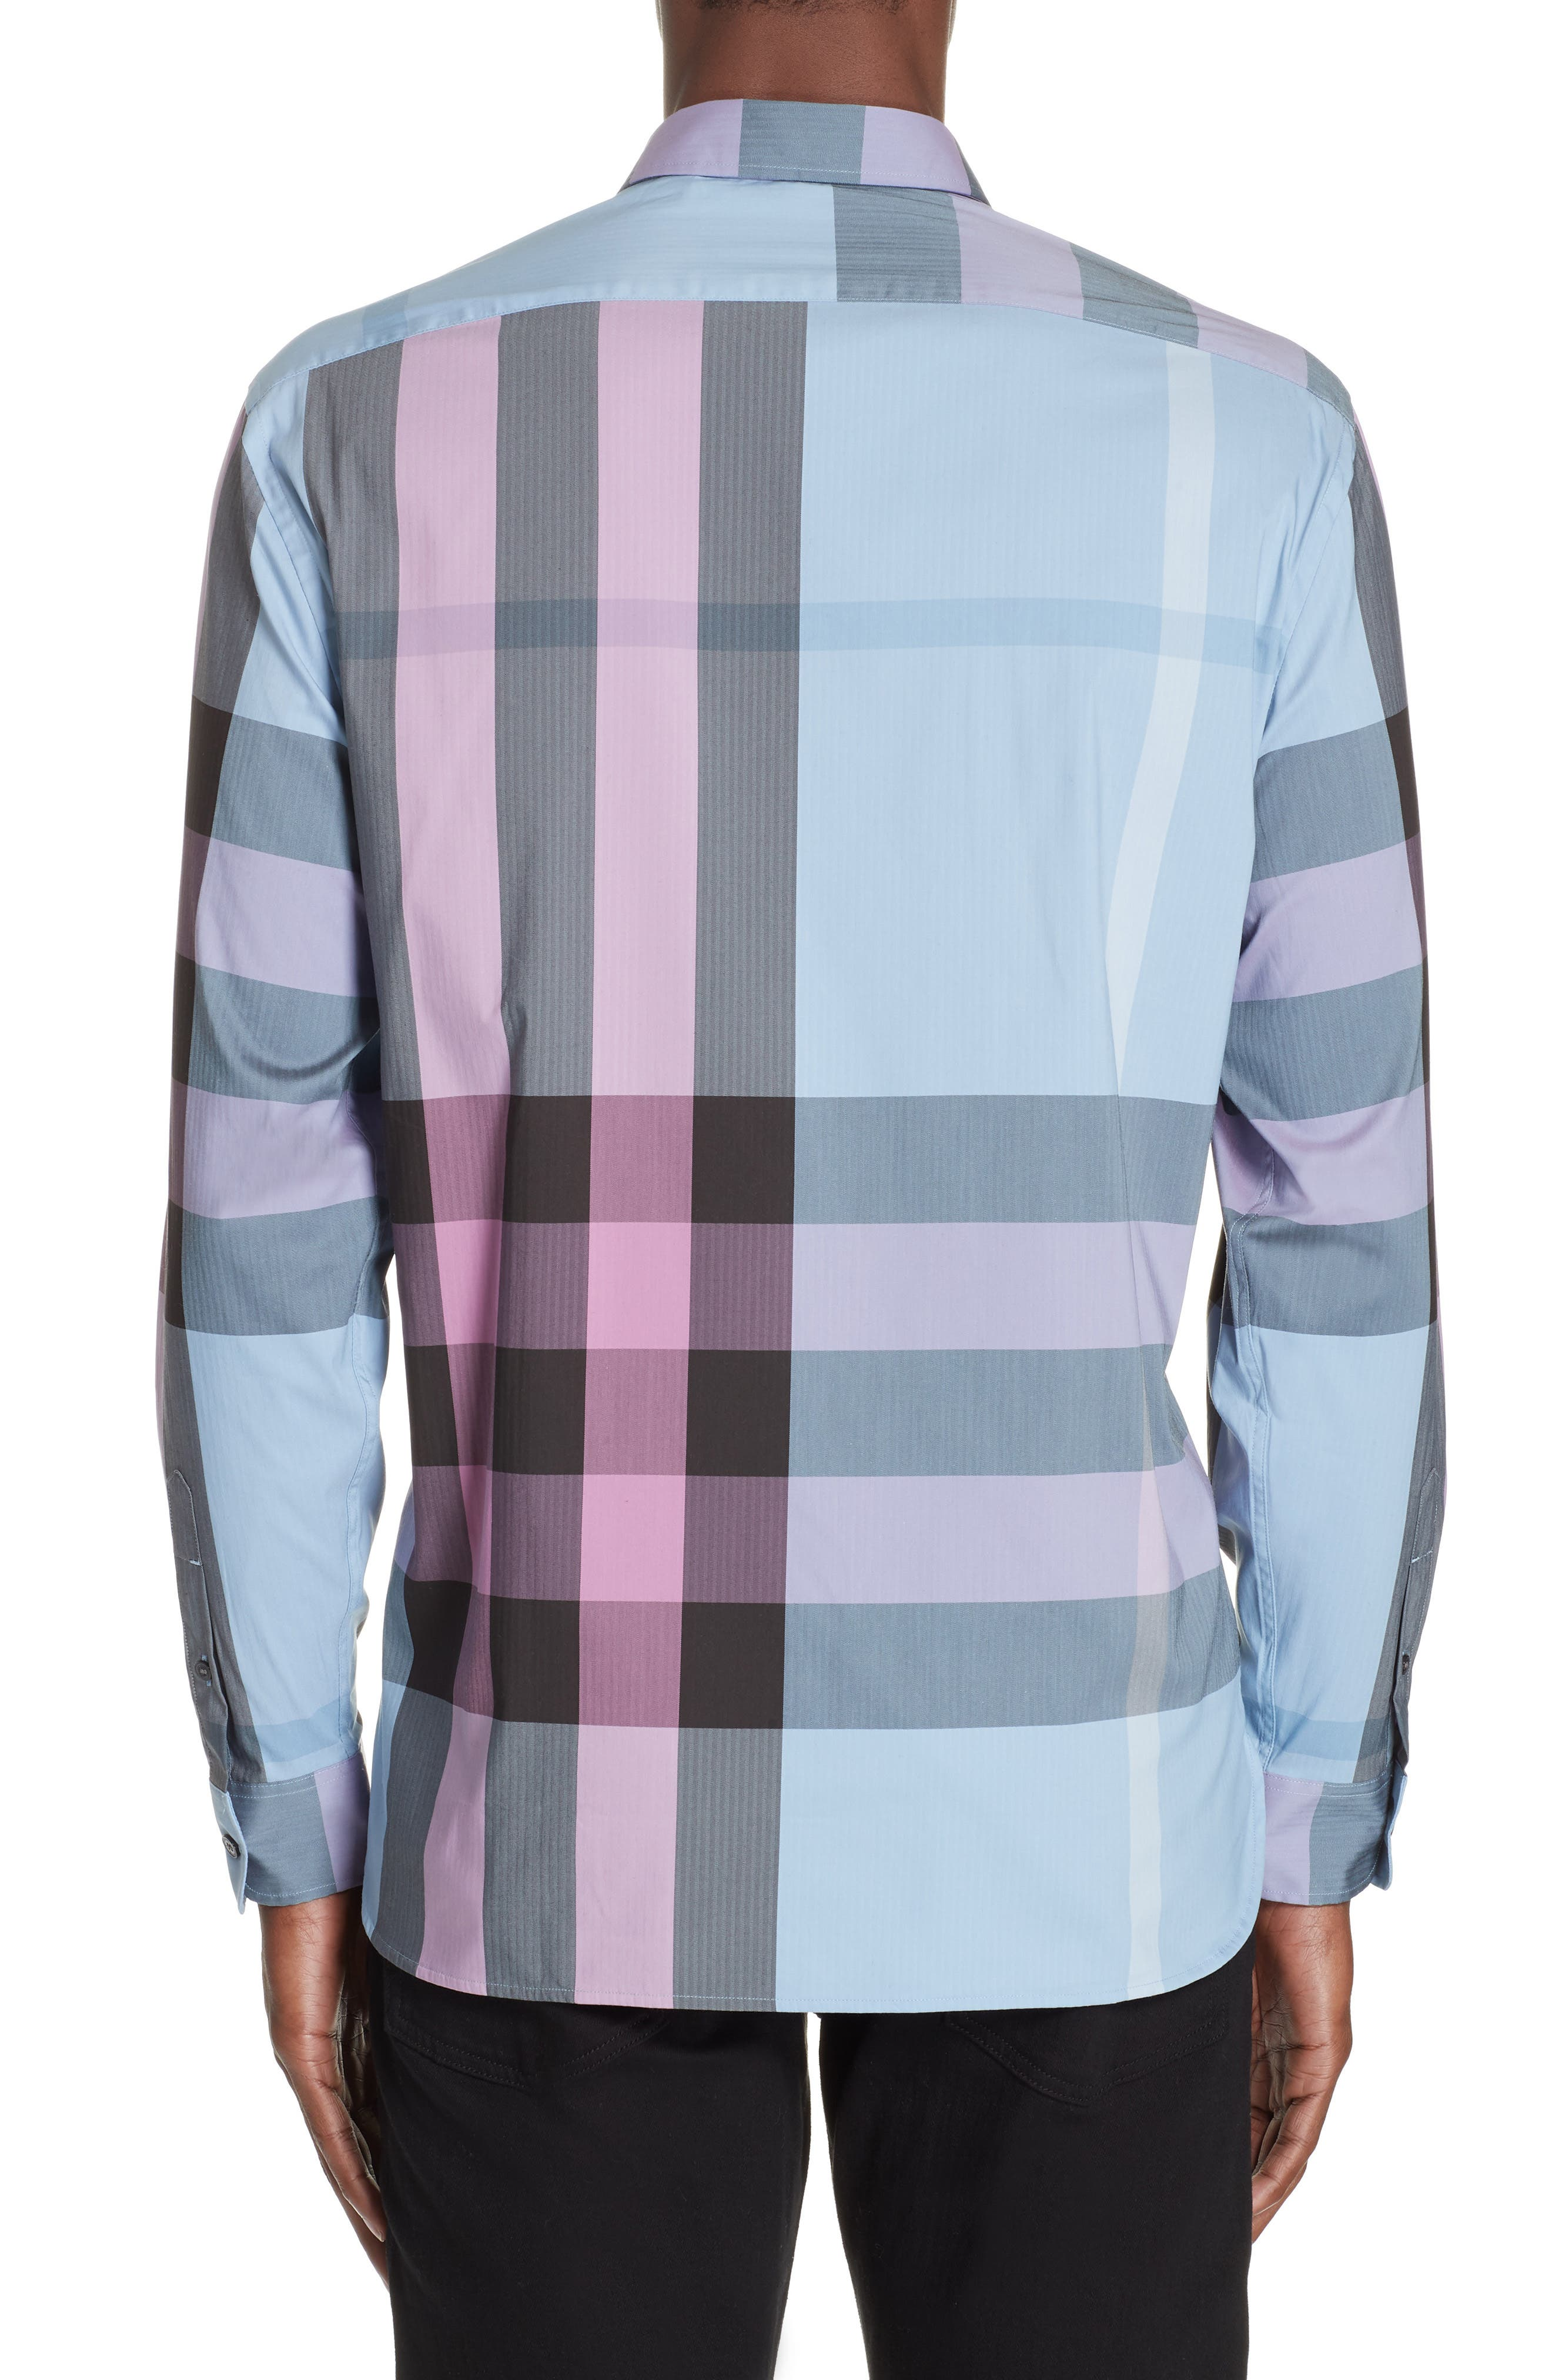 BURBERRY, Thornaby Slim Fit Check Sport Shirt, Alternate thumbnail 3, color, 400